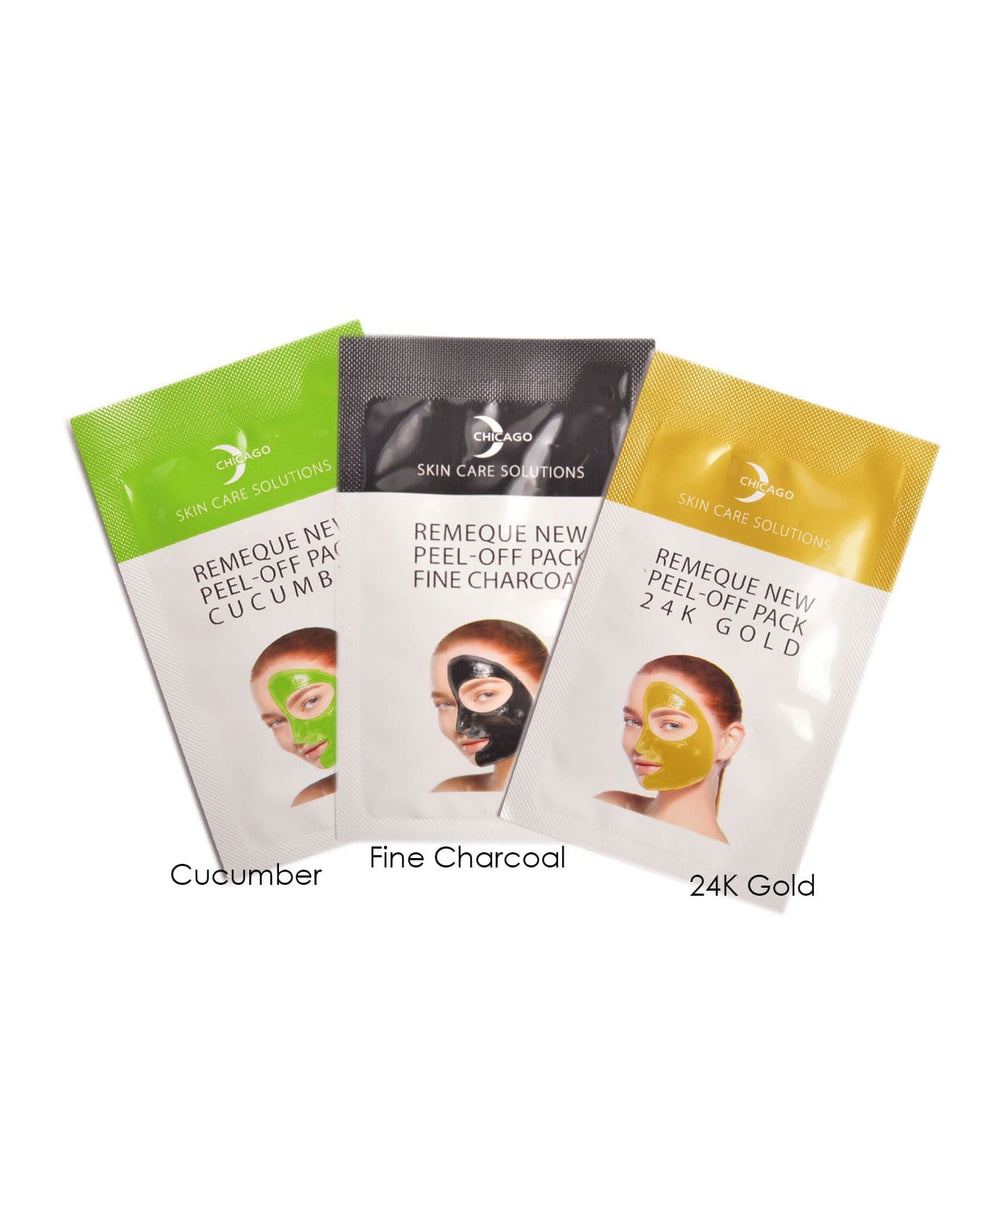 Chicago Skin Care Solutions Remeque New Peel-Off Mask